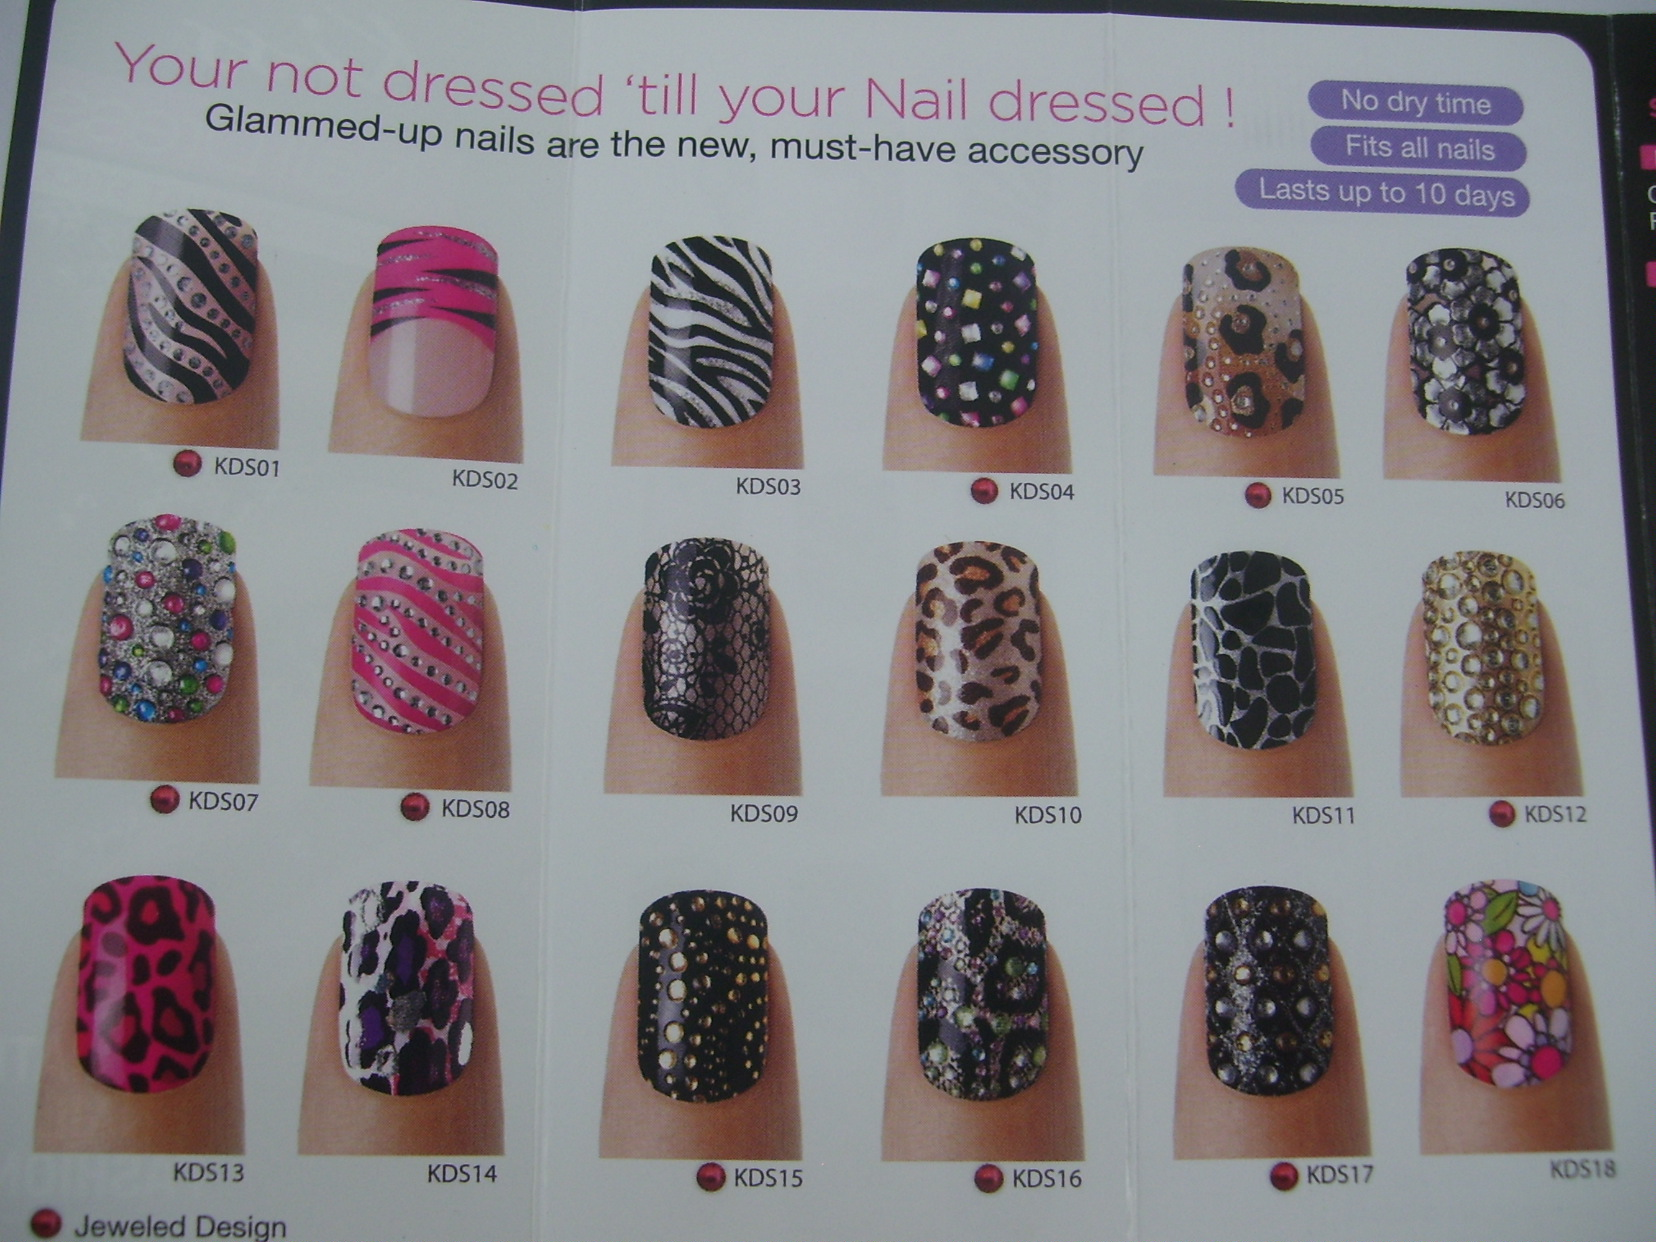 Review: Kiss Nail Dress from Influenster - My Highest Self